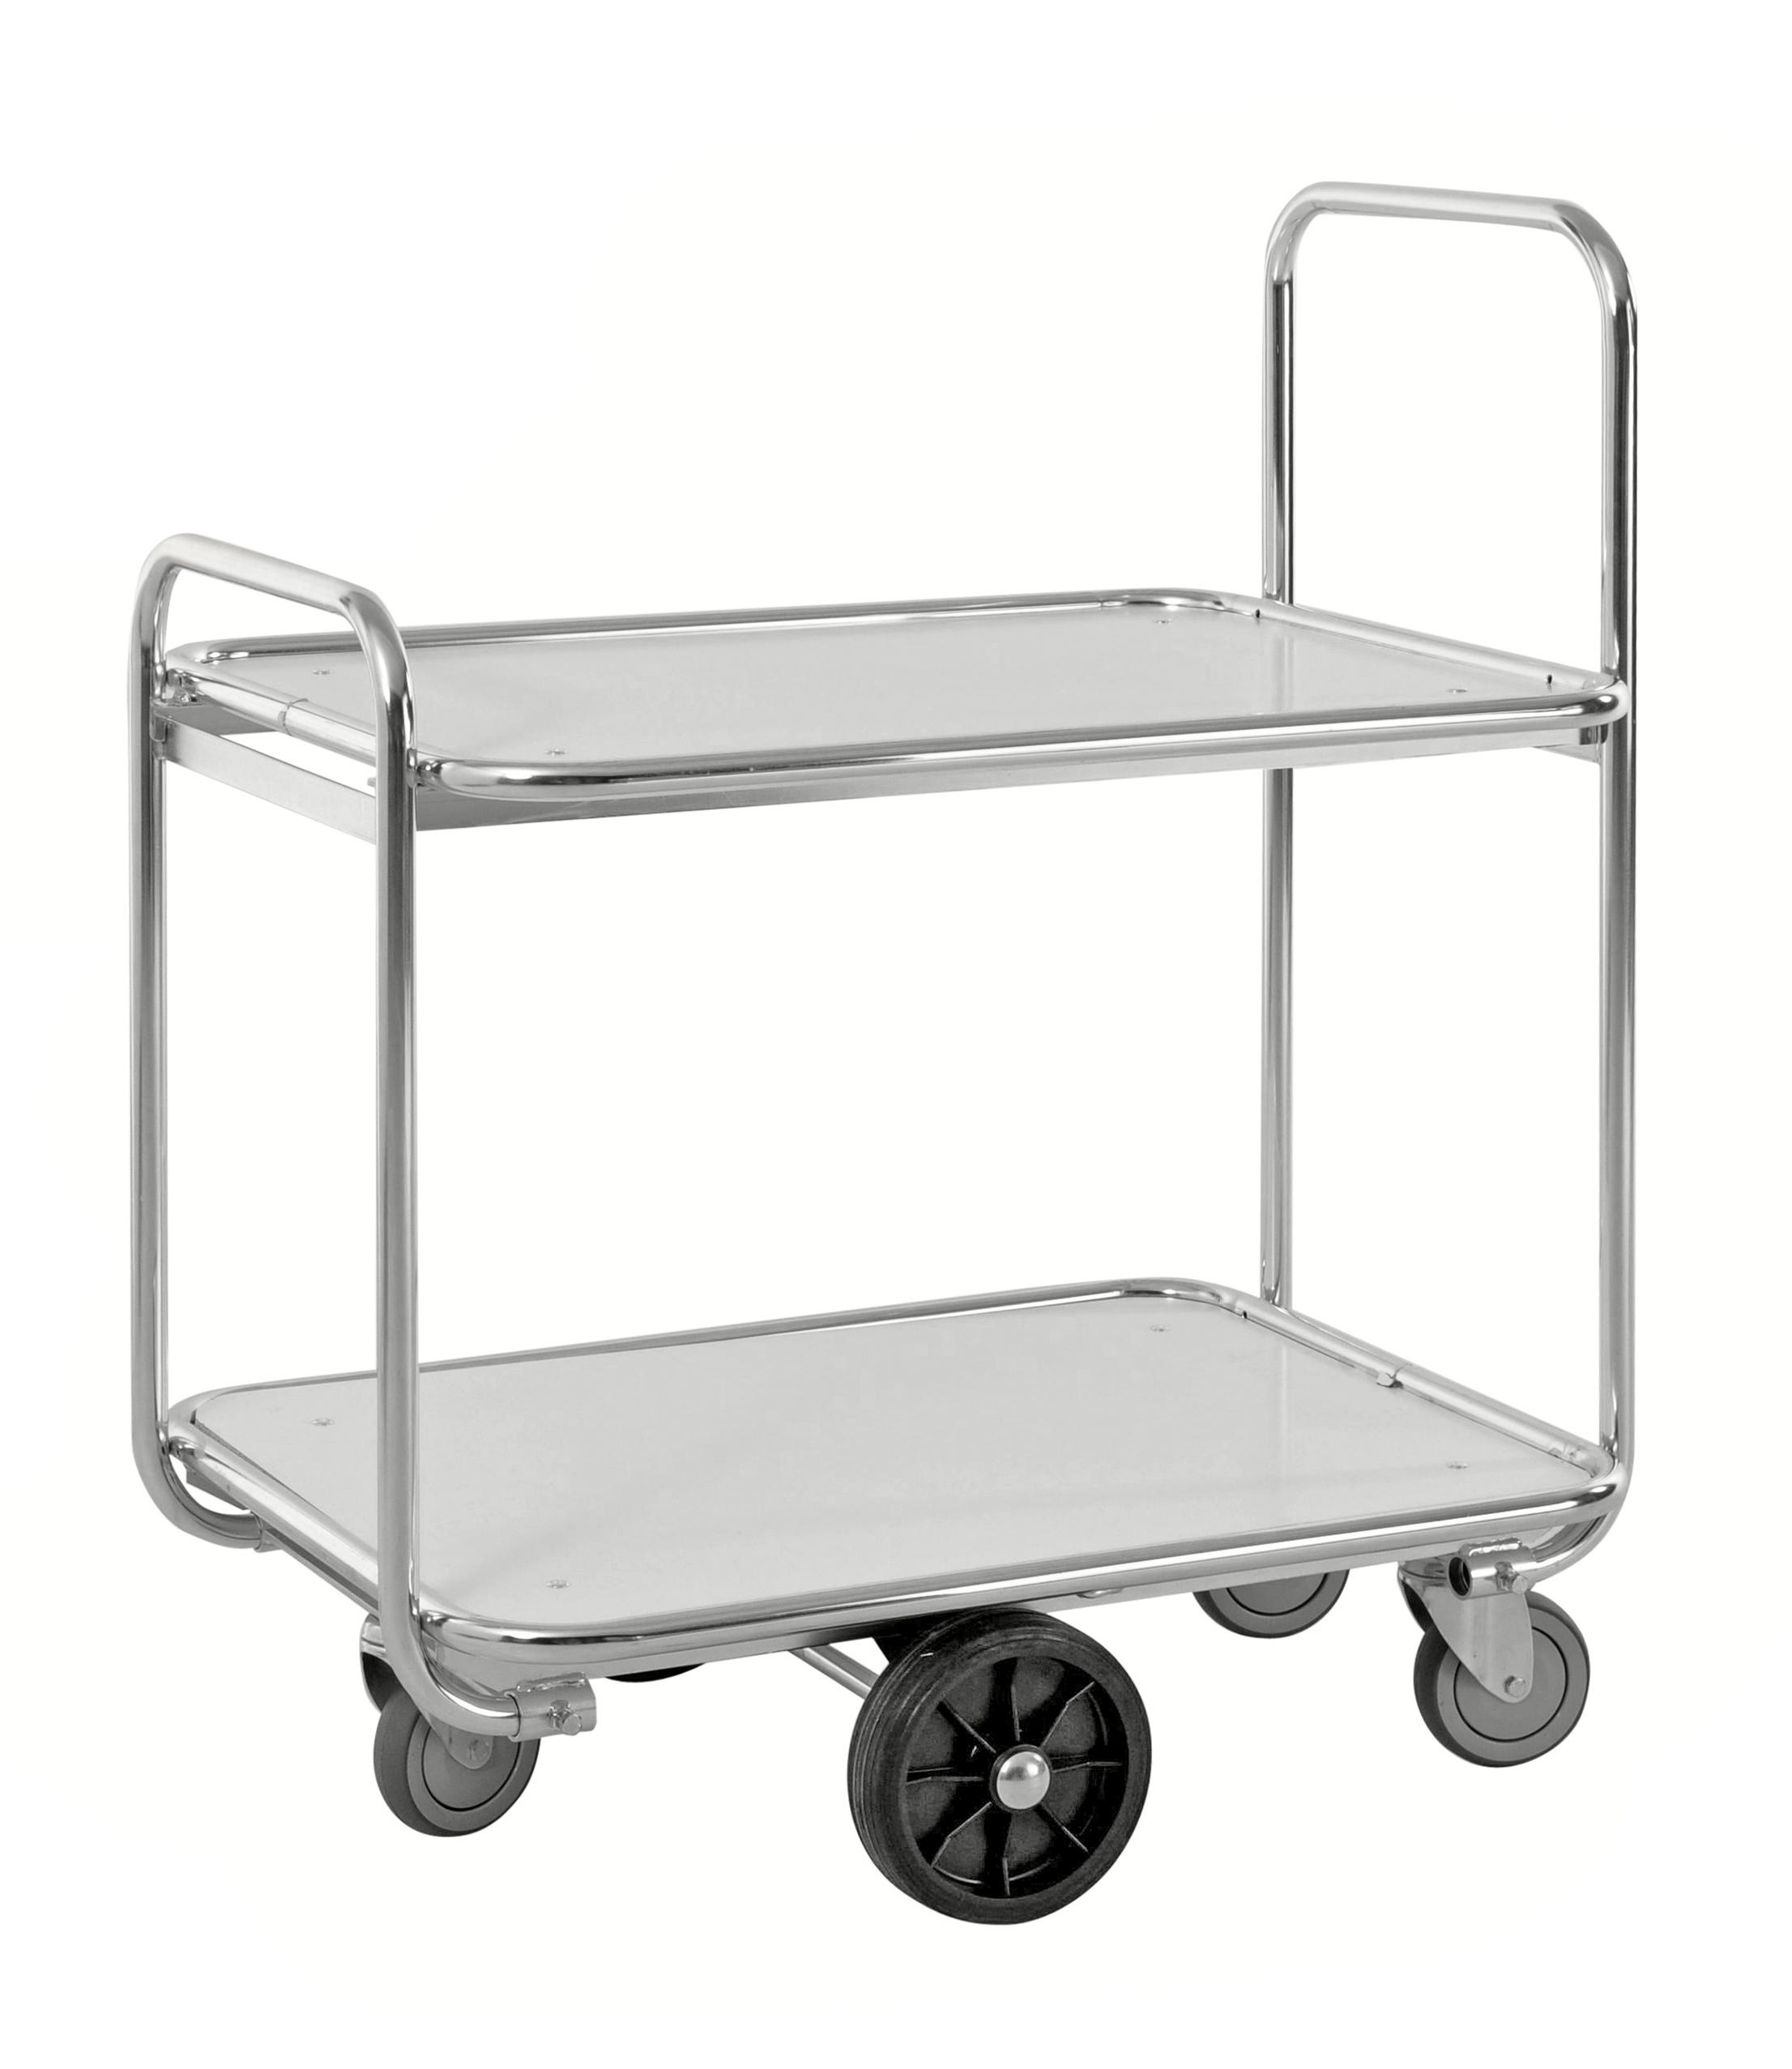 KM8500-2L | Picking trolley 2 levels